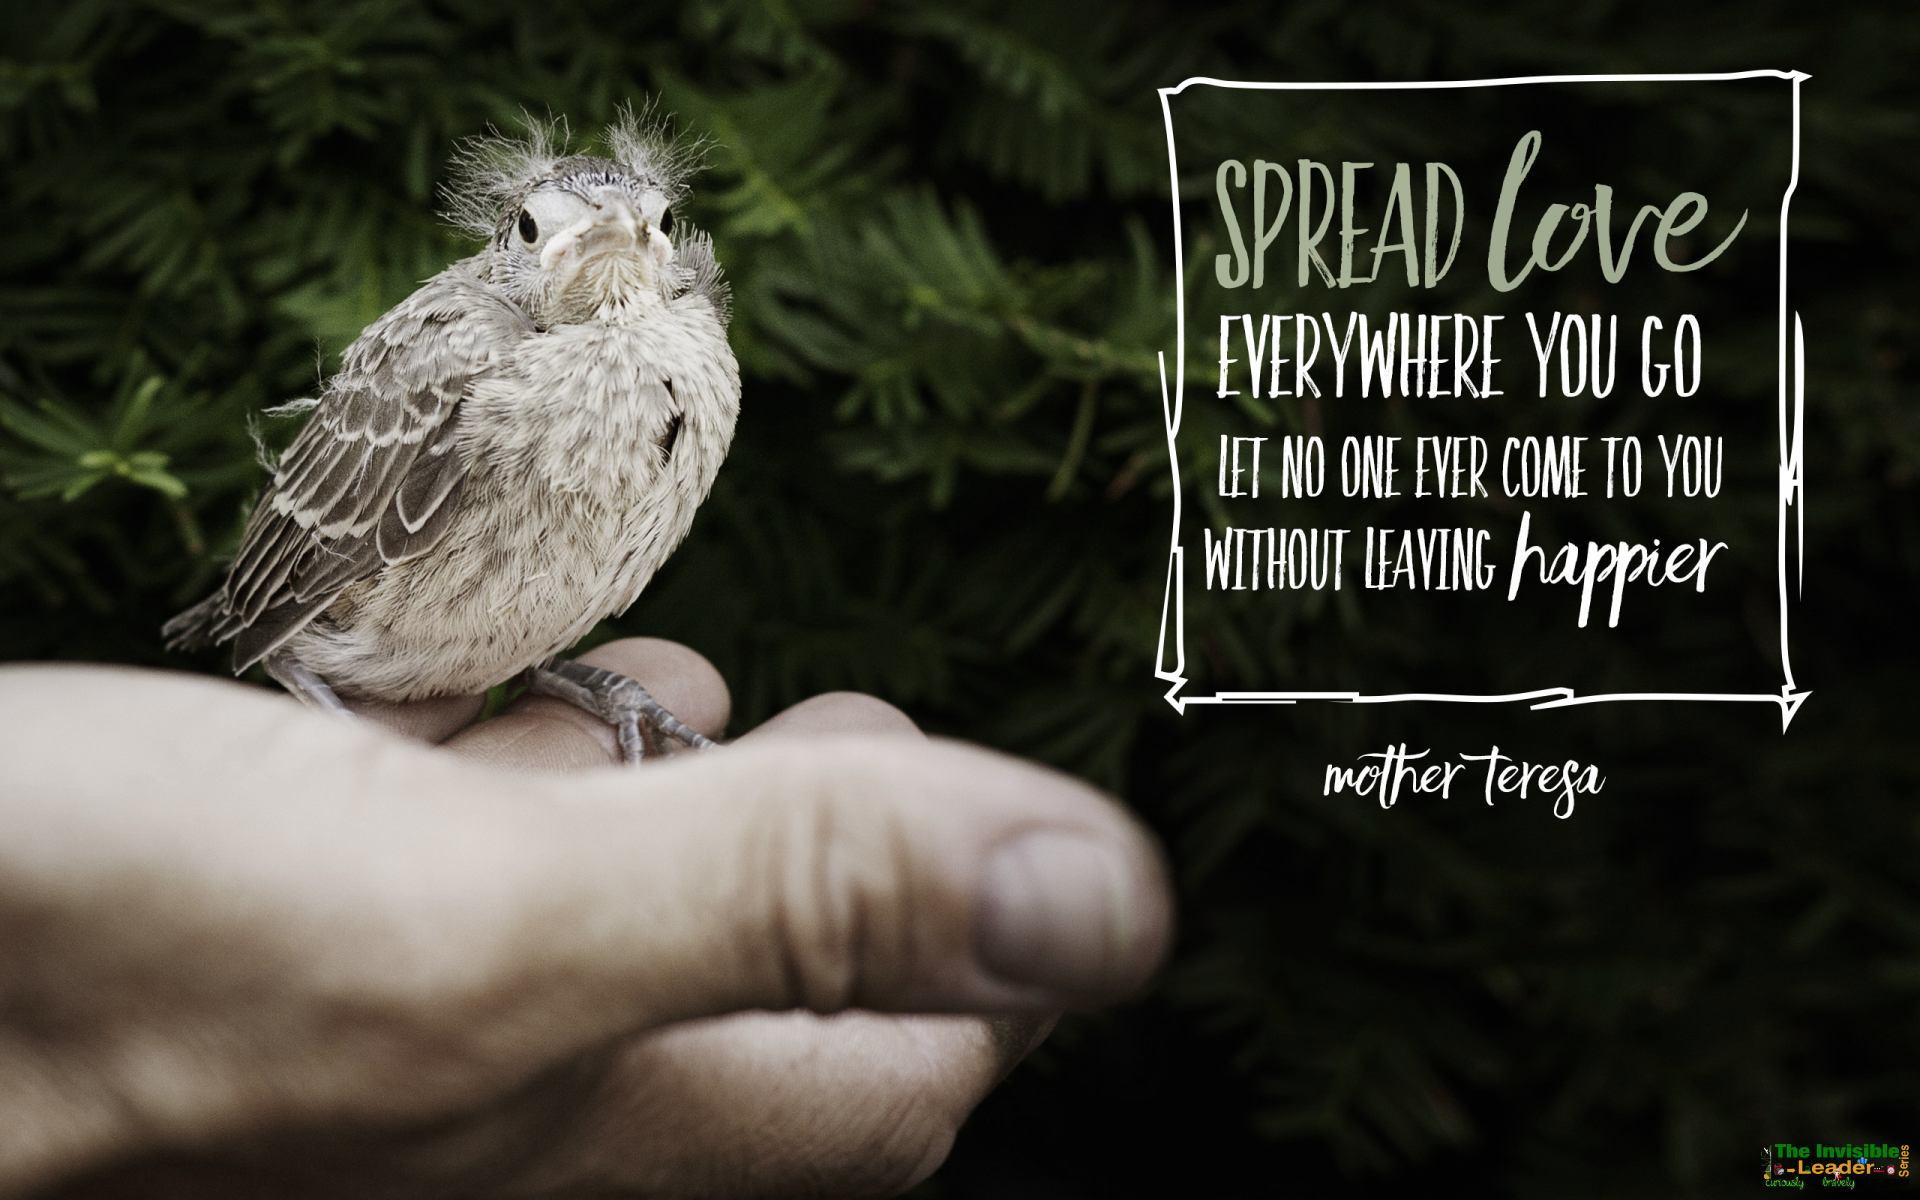 """Spread love everywhere you go let no one ever come to you without leaving happier"" Mother Tereza! [1920×1200]"